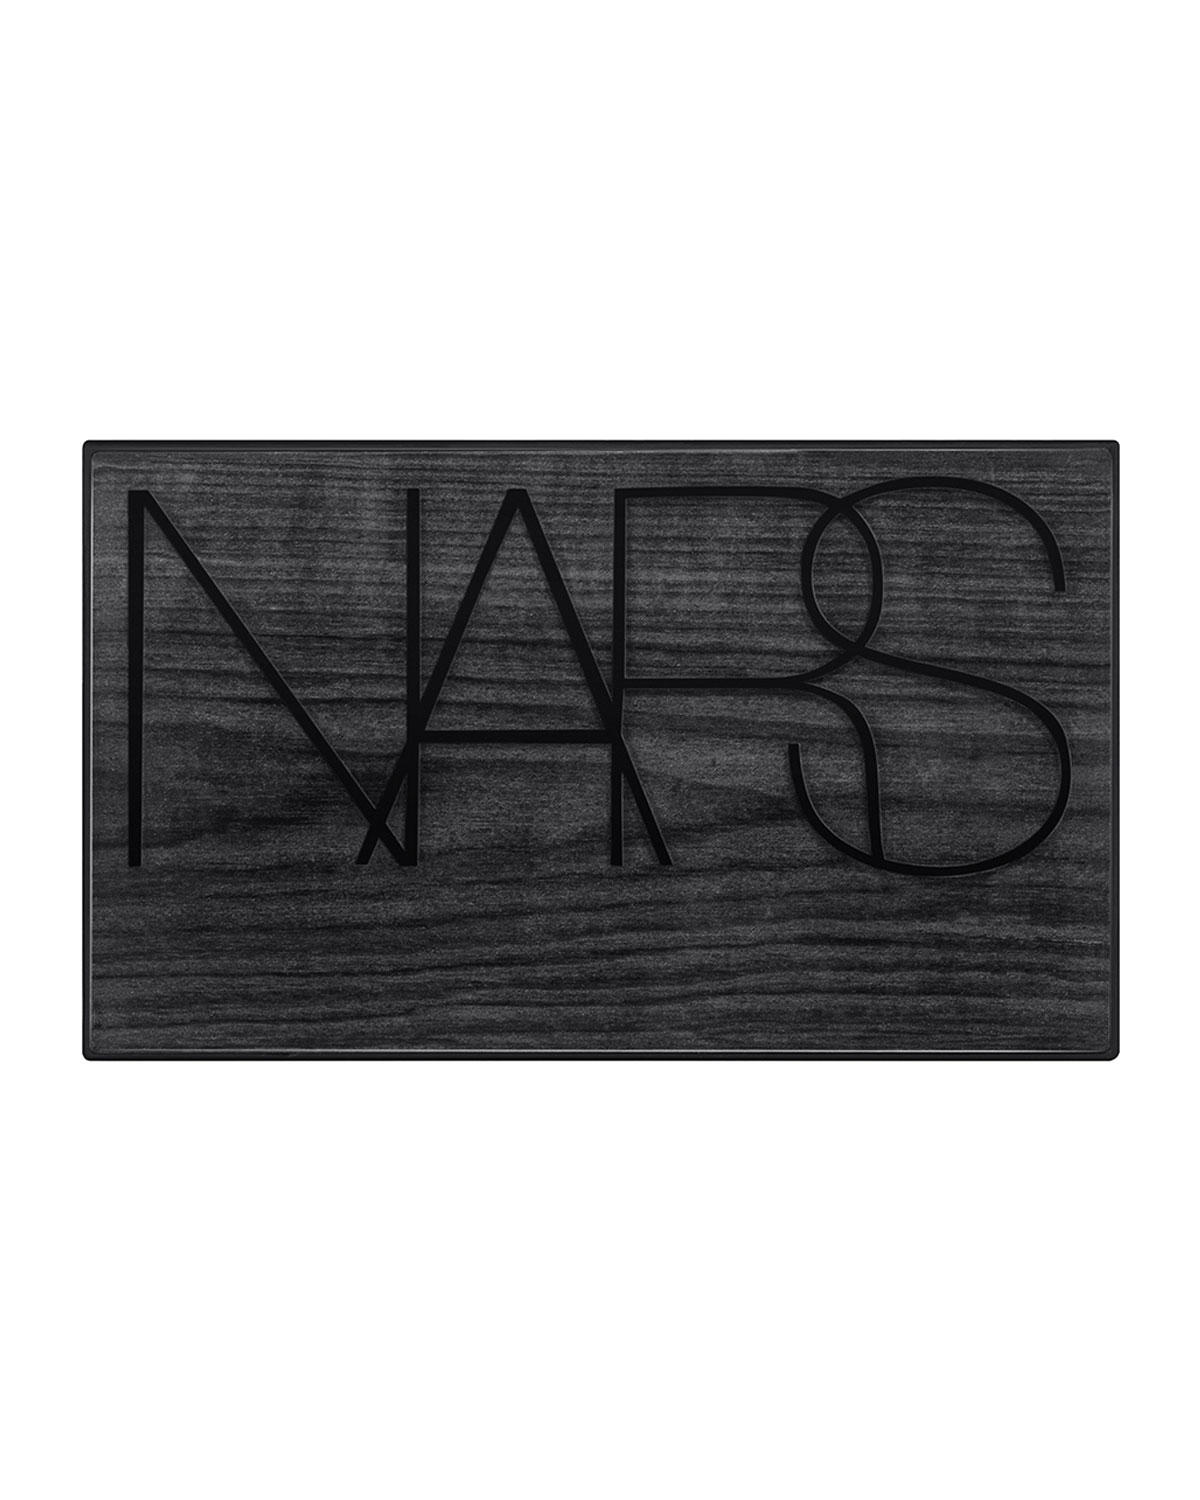 New Release Nars launched New Limited Edition Laguna Tiare Bronzer